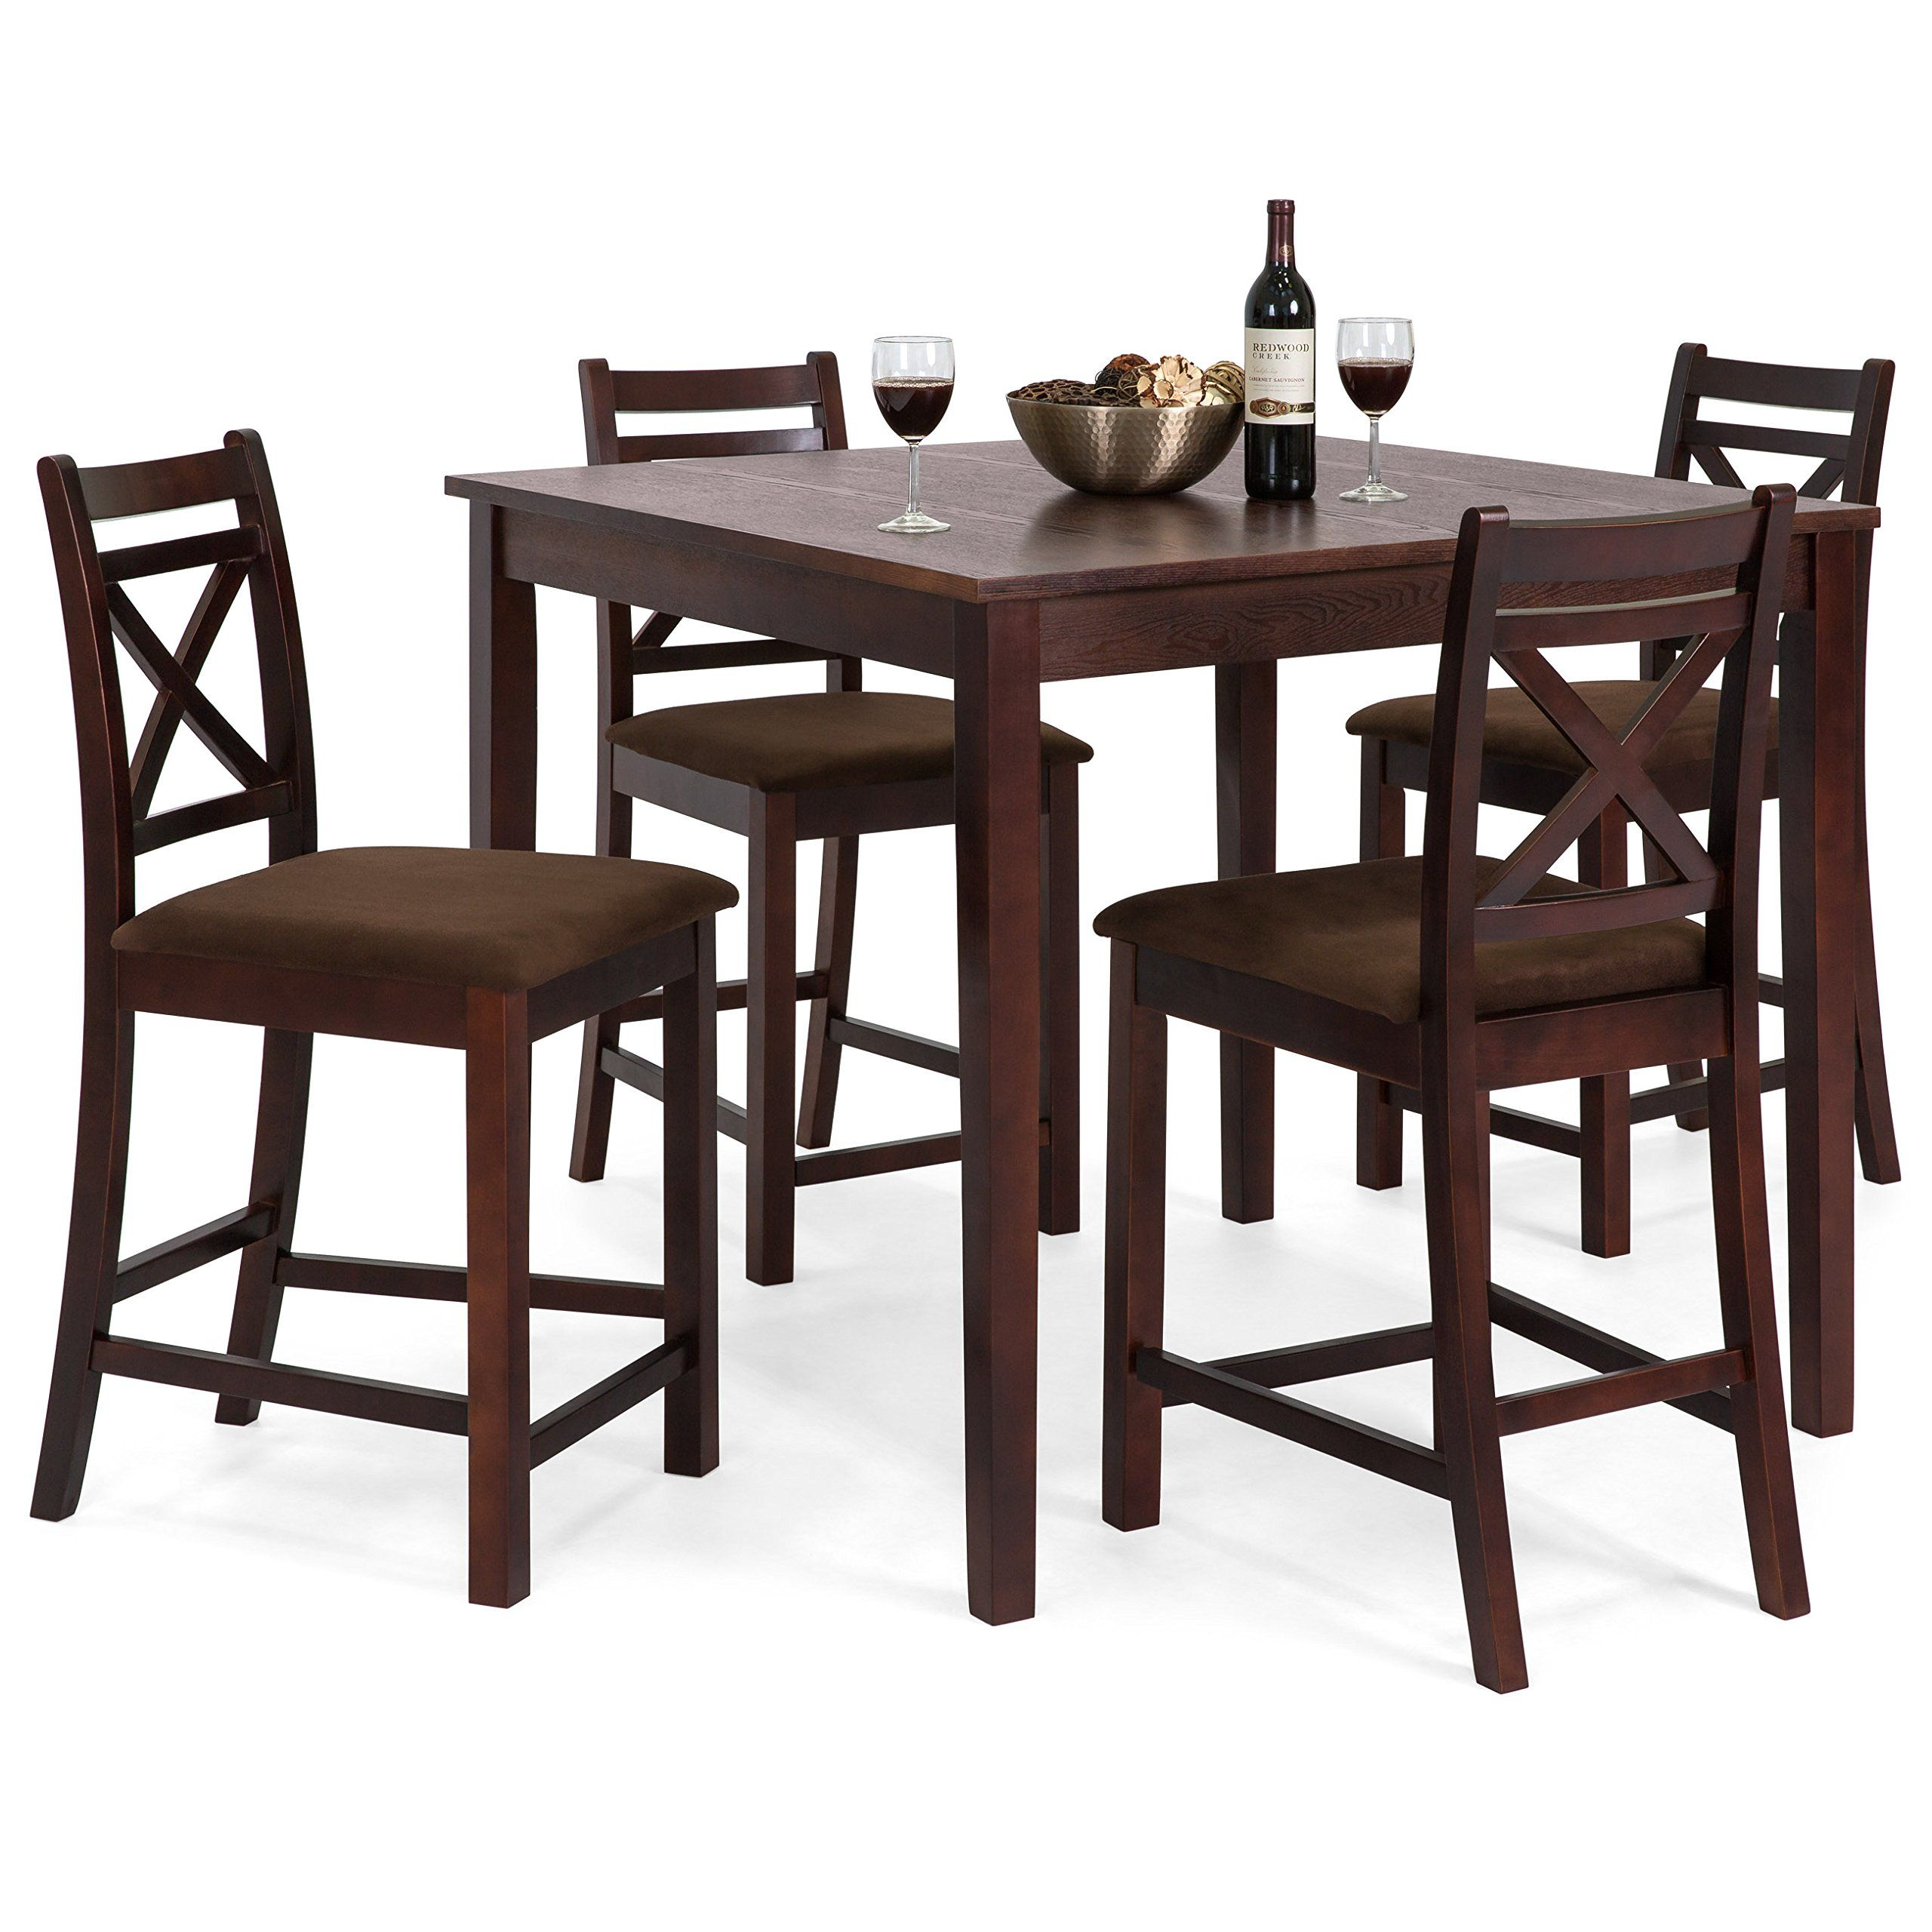 Best Choice Products 5piece Wooden Counter Height Square Dining Table Set W 4 Chairs Square Dining Table Set Dining Room Furniture Sets Dark Wood Dining Table